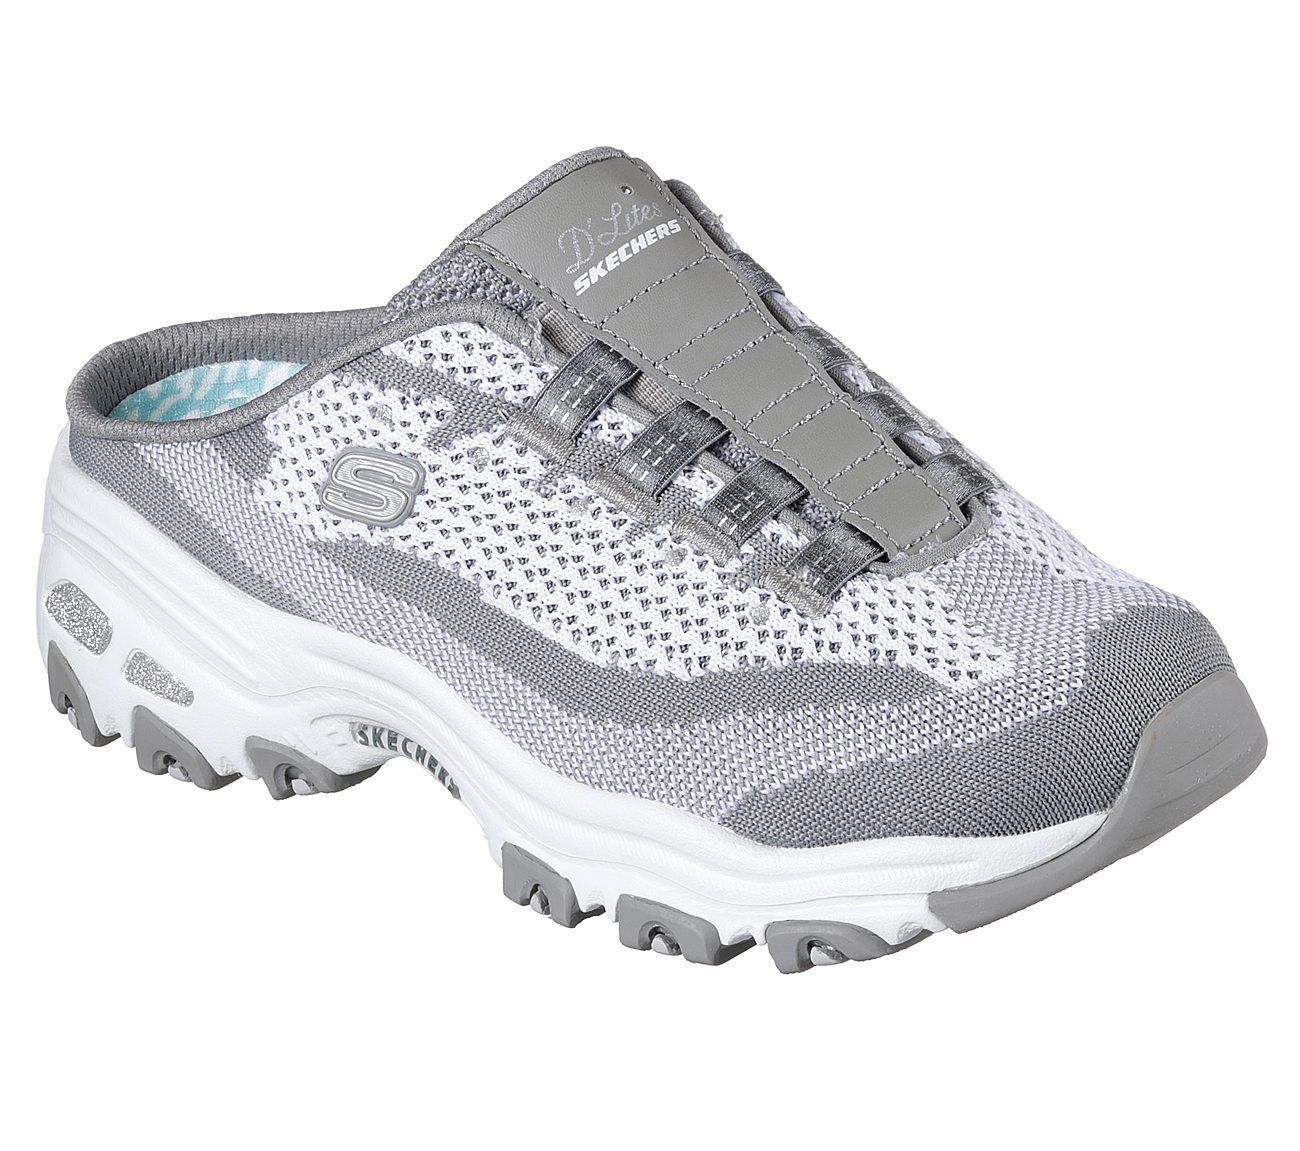 11957 Gris Dlites Skechers Zapatos Mujer sin and 50 similar